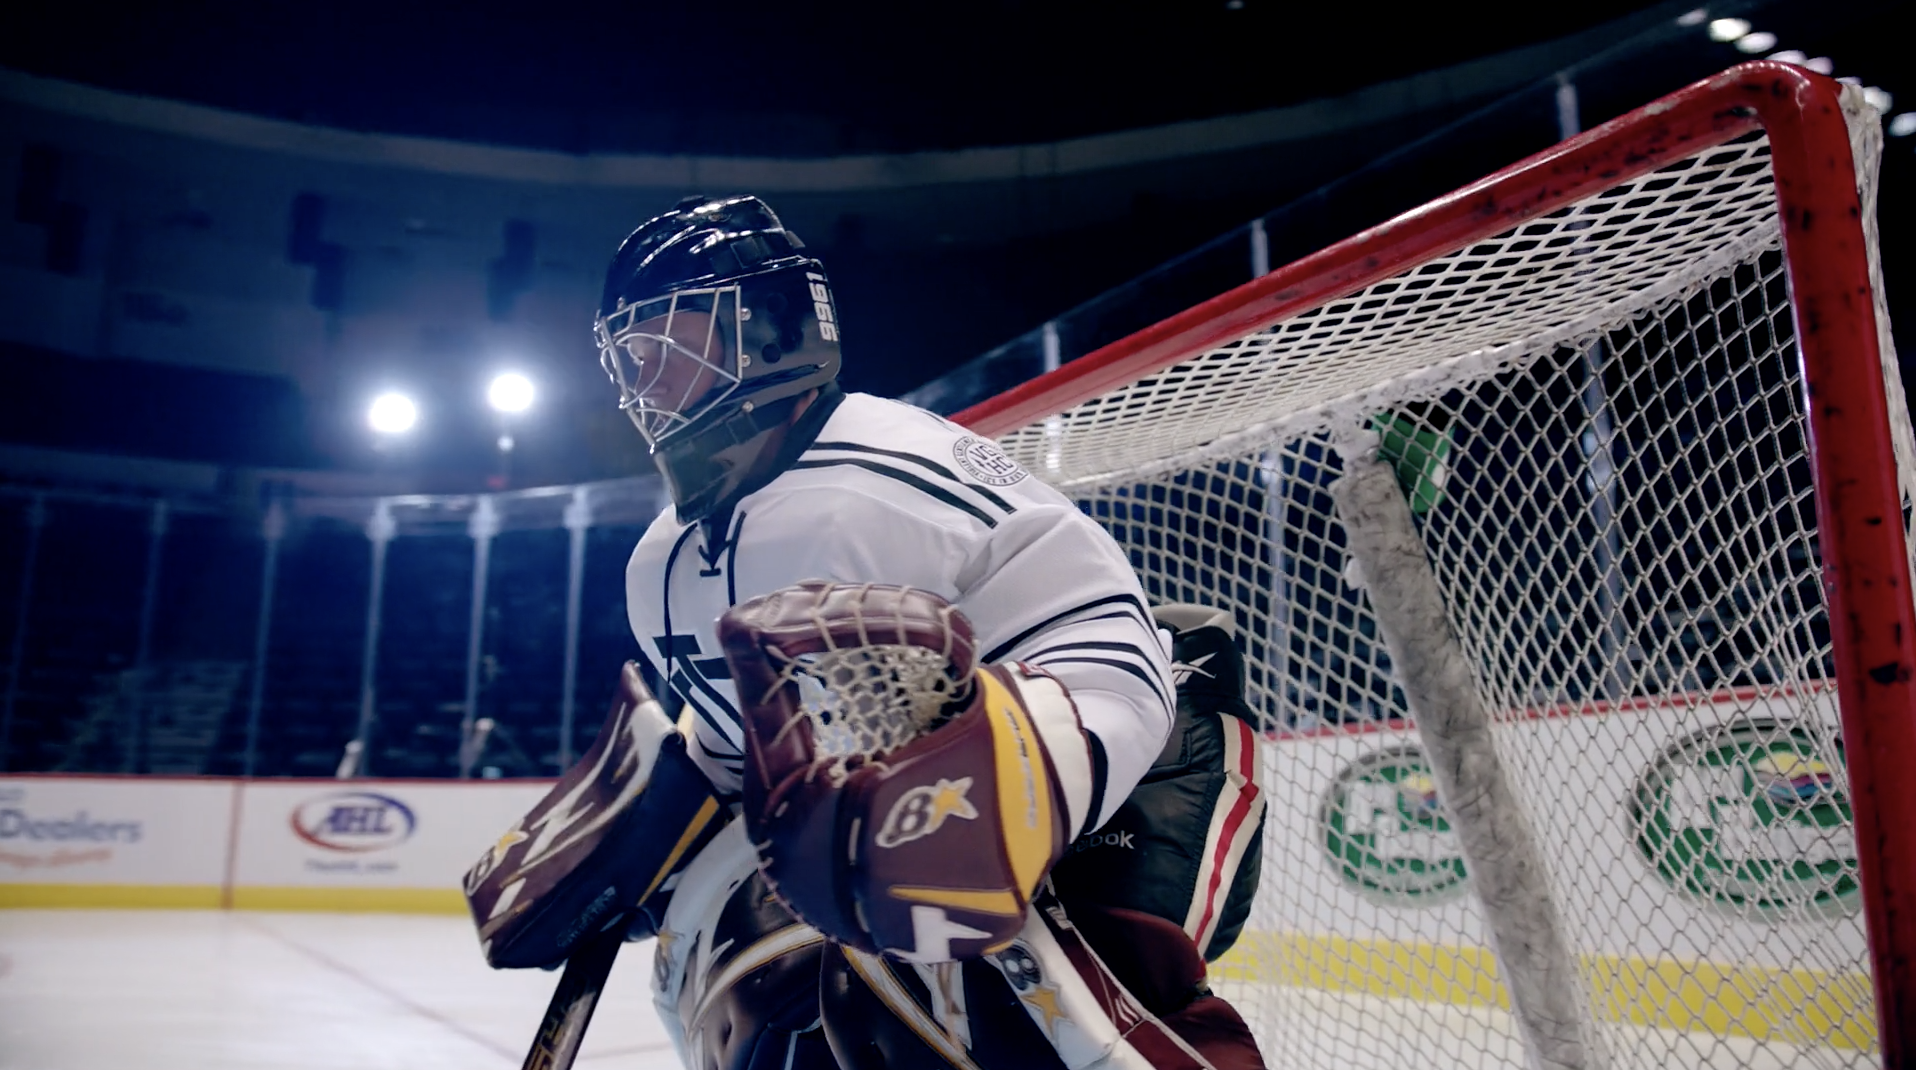 CINEMATOGRAPHER CESAR ANDRE GULLS ON ICE FRAME 2.png